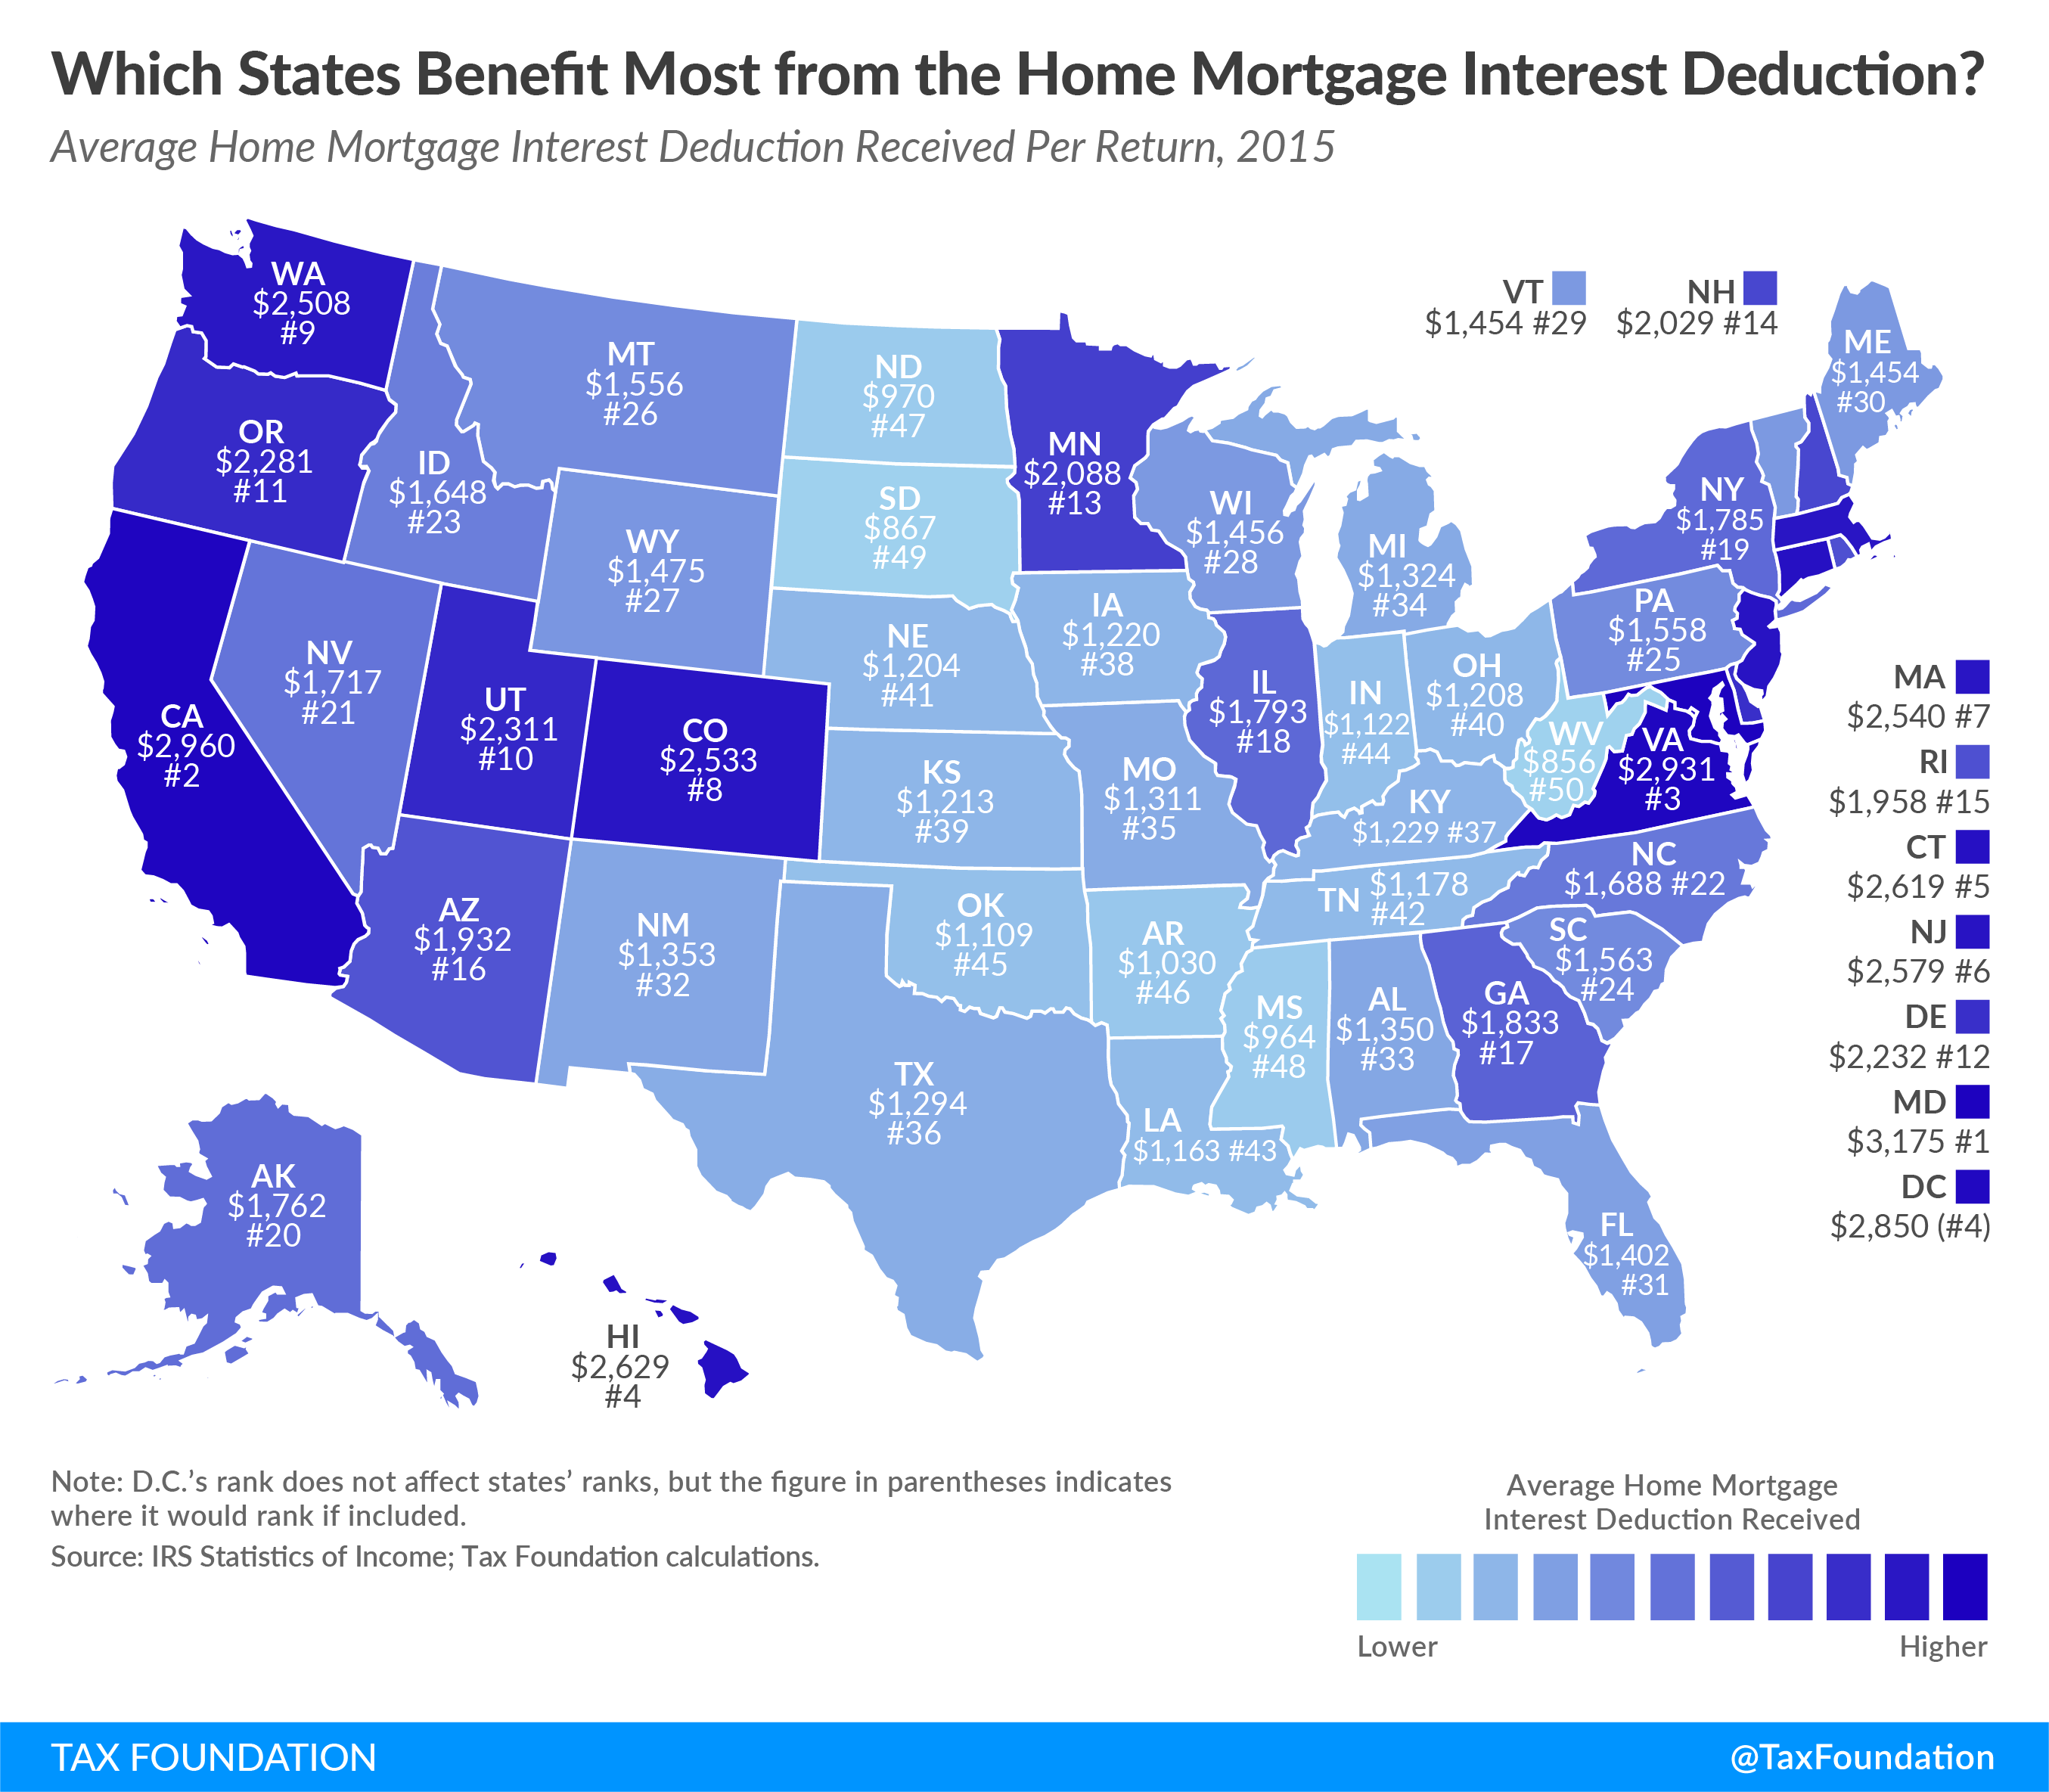 Average Home Mortgage Interest Deduction Received Per Return